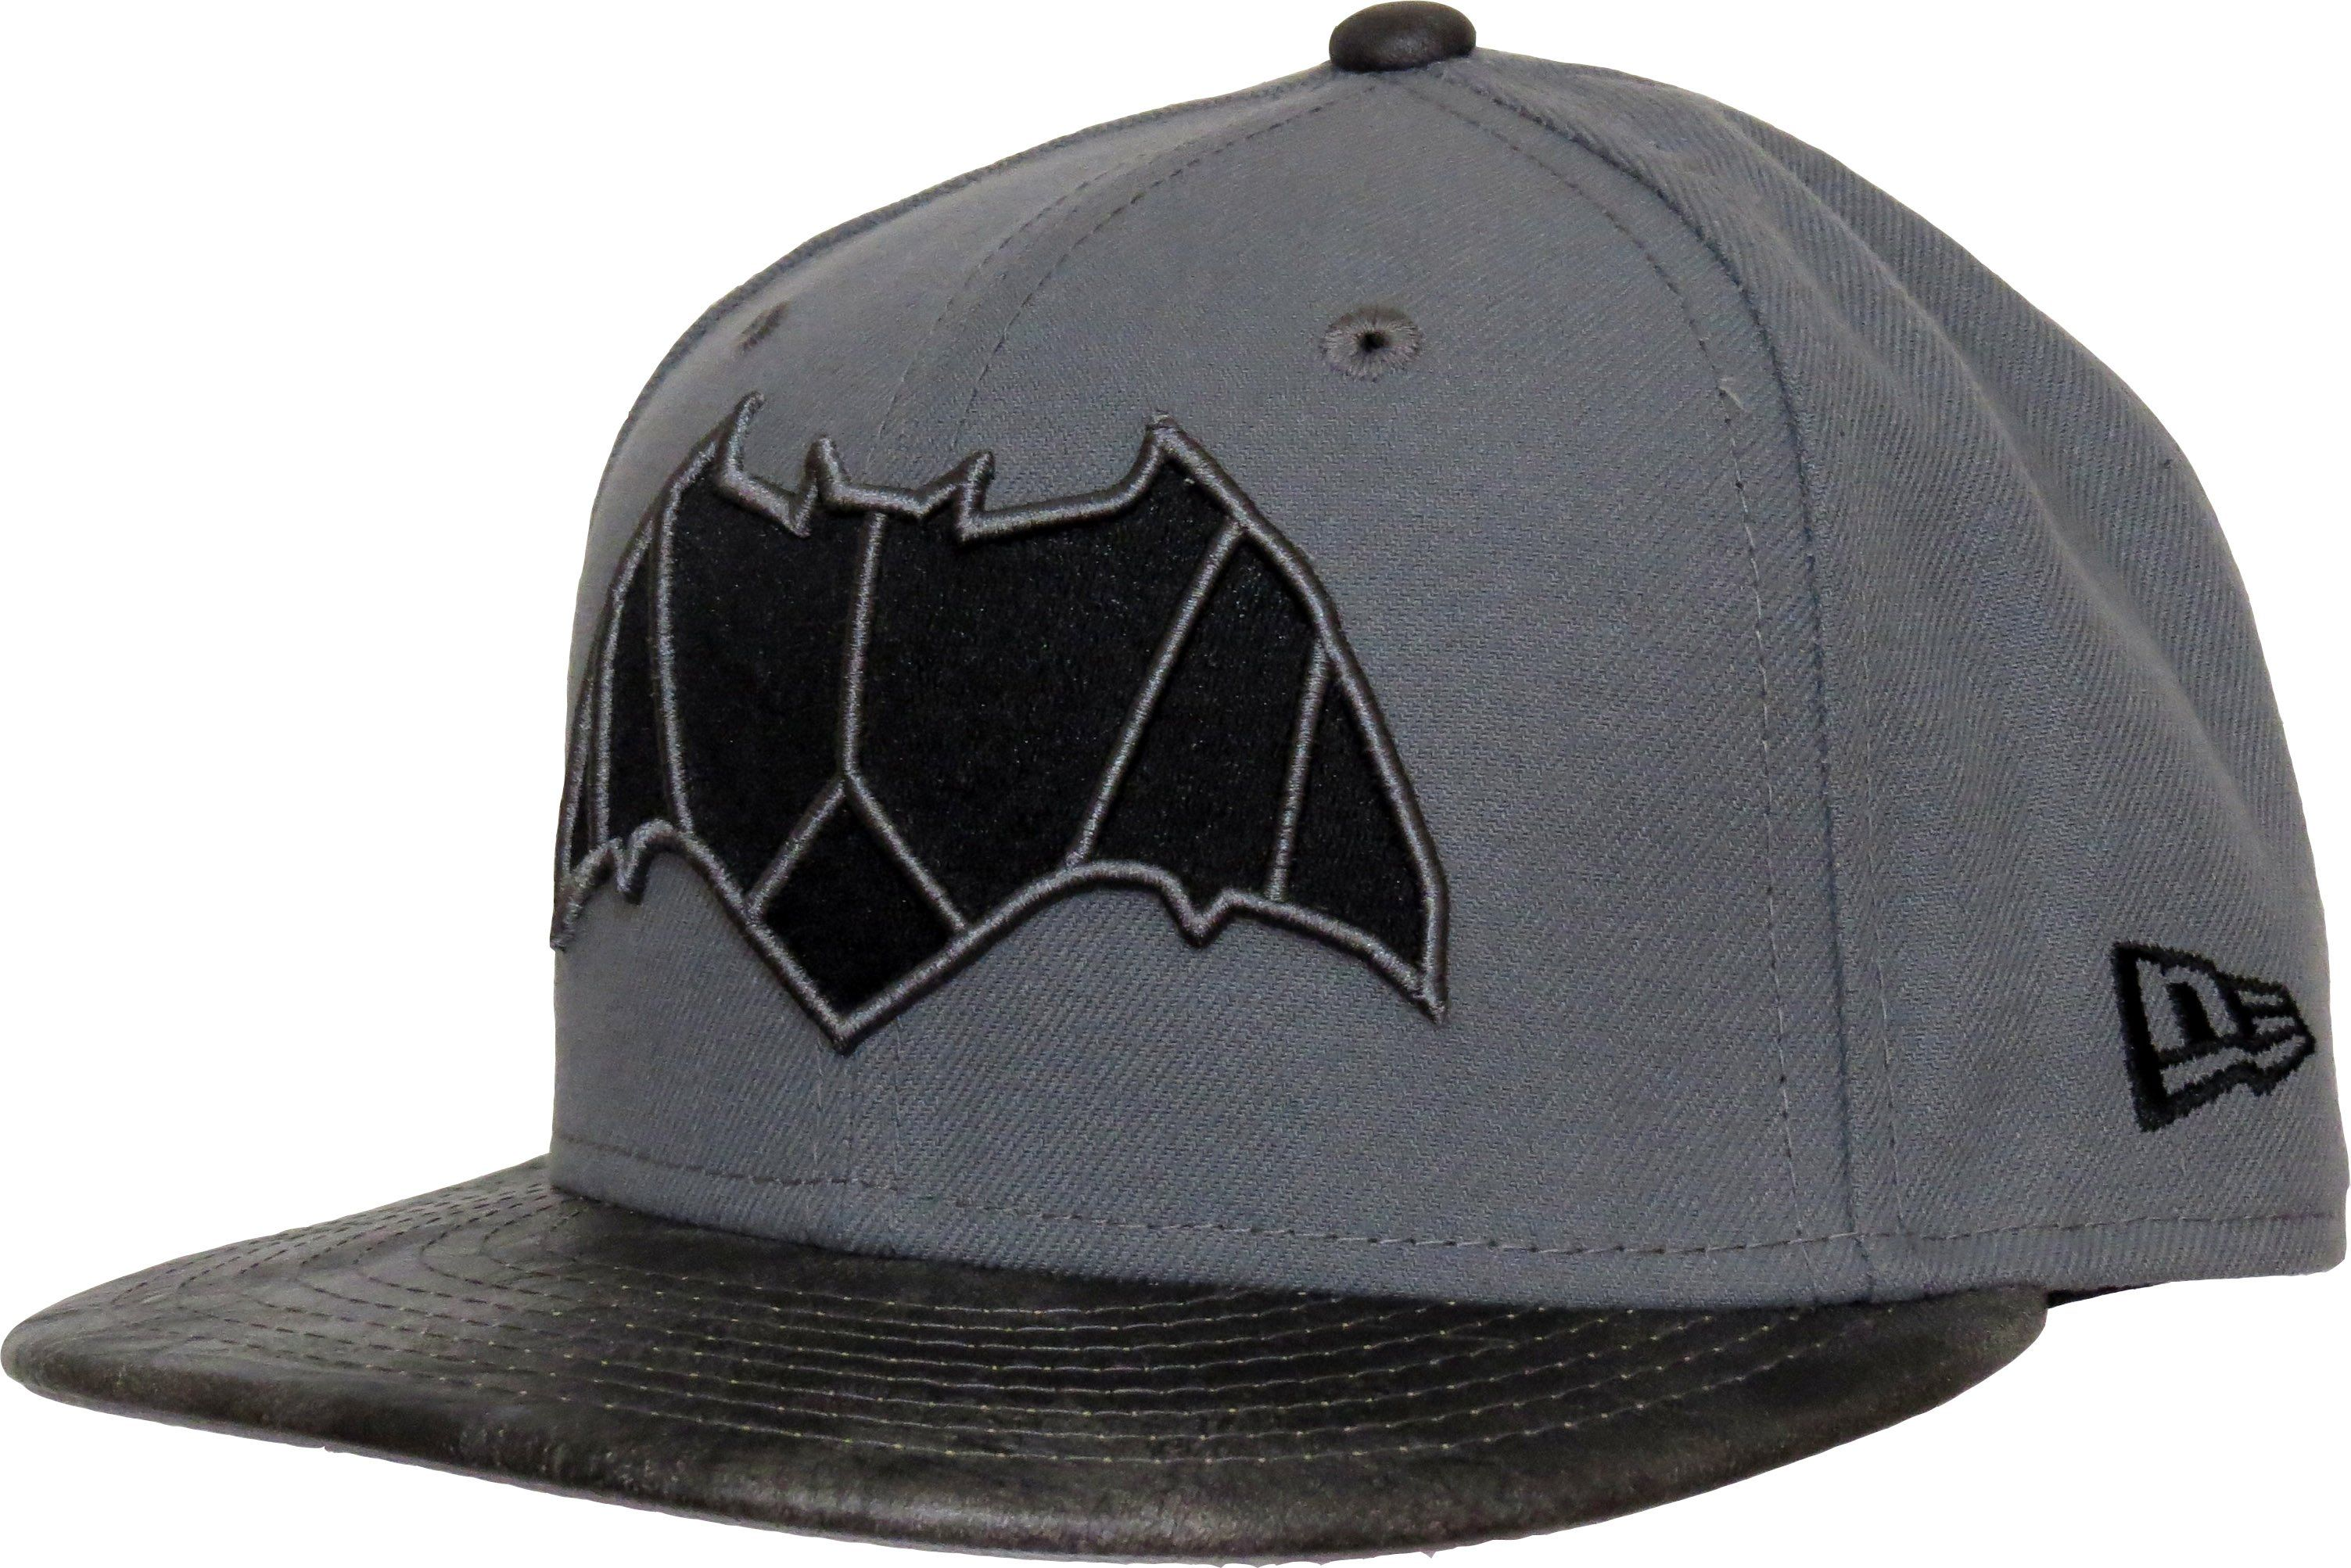 New Era 950 Justice League Snapback Cap Grey With Batman Front Logo The New Era And Justice League Side Logos And The L Snapback Cap New Era Leather Fashion